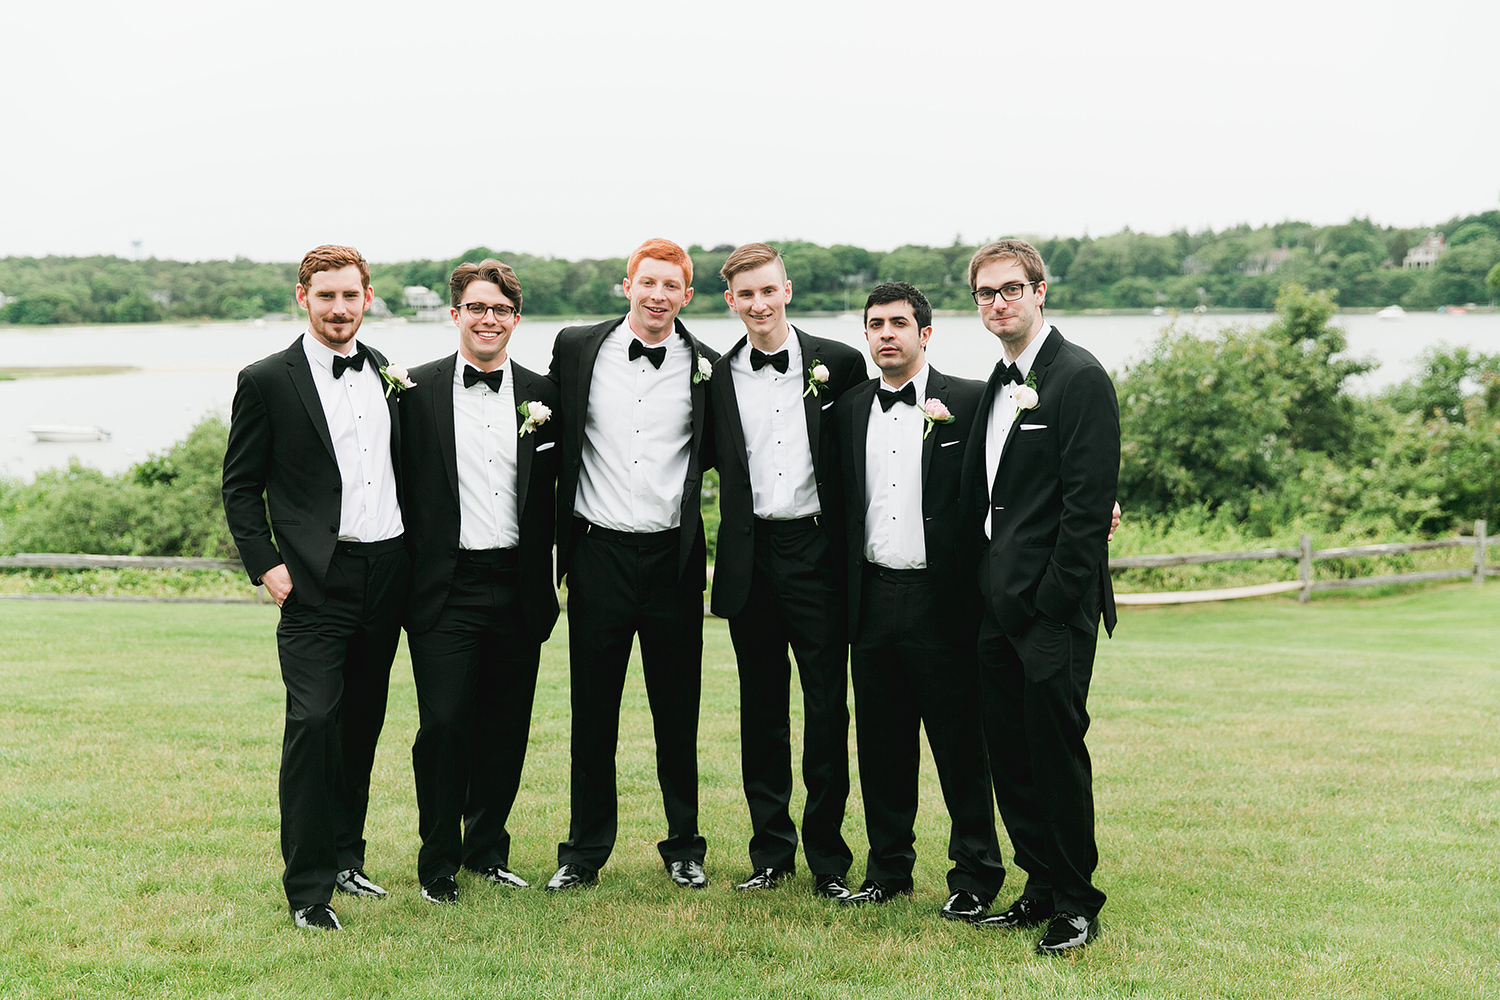 oyster_harbors_wedding_30.jpg